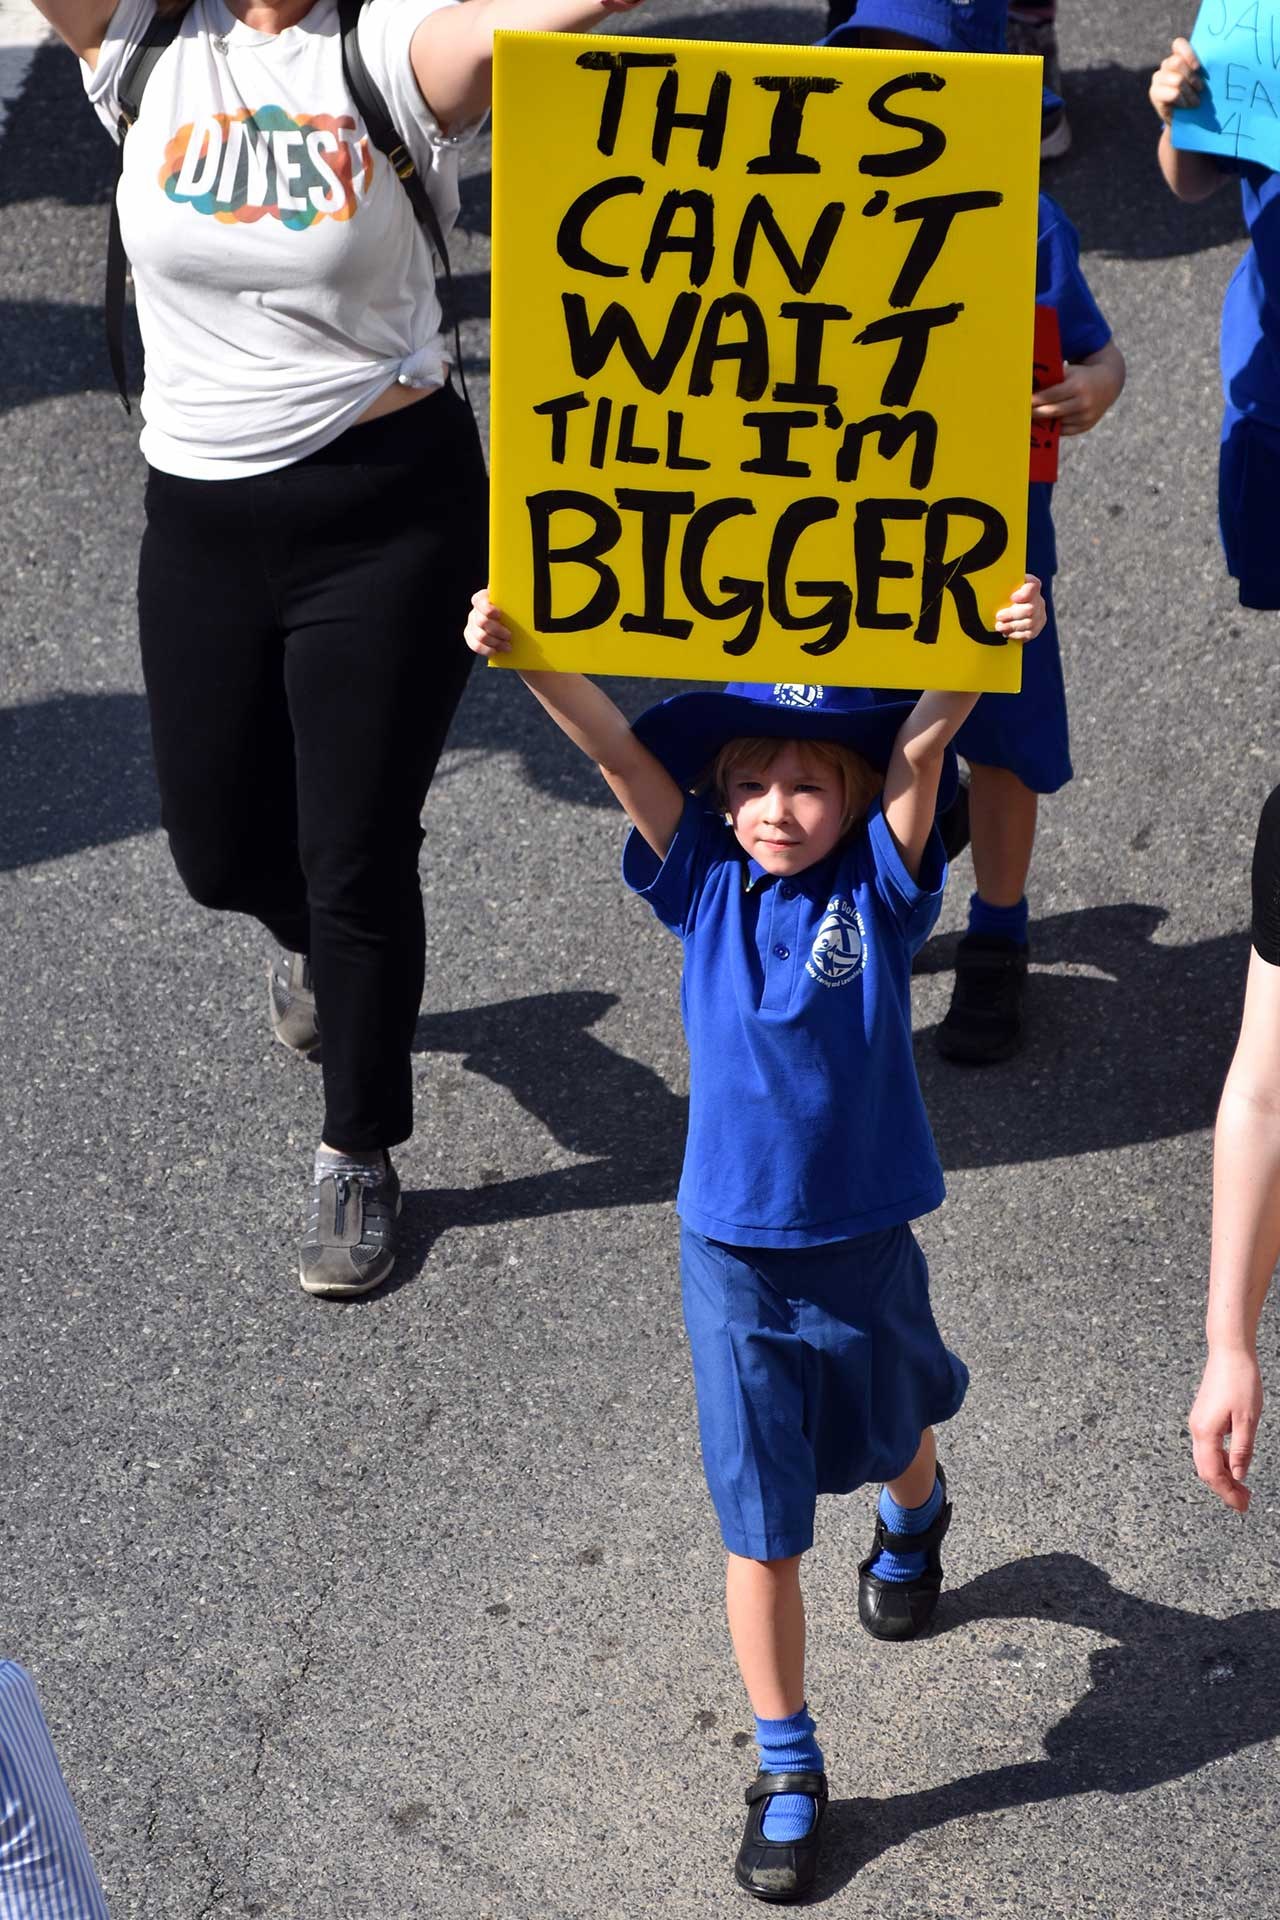 This can't wait until I am bigger. // Global Climate Strike. Bild: cc School Striker / Climate Strikes